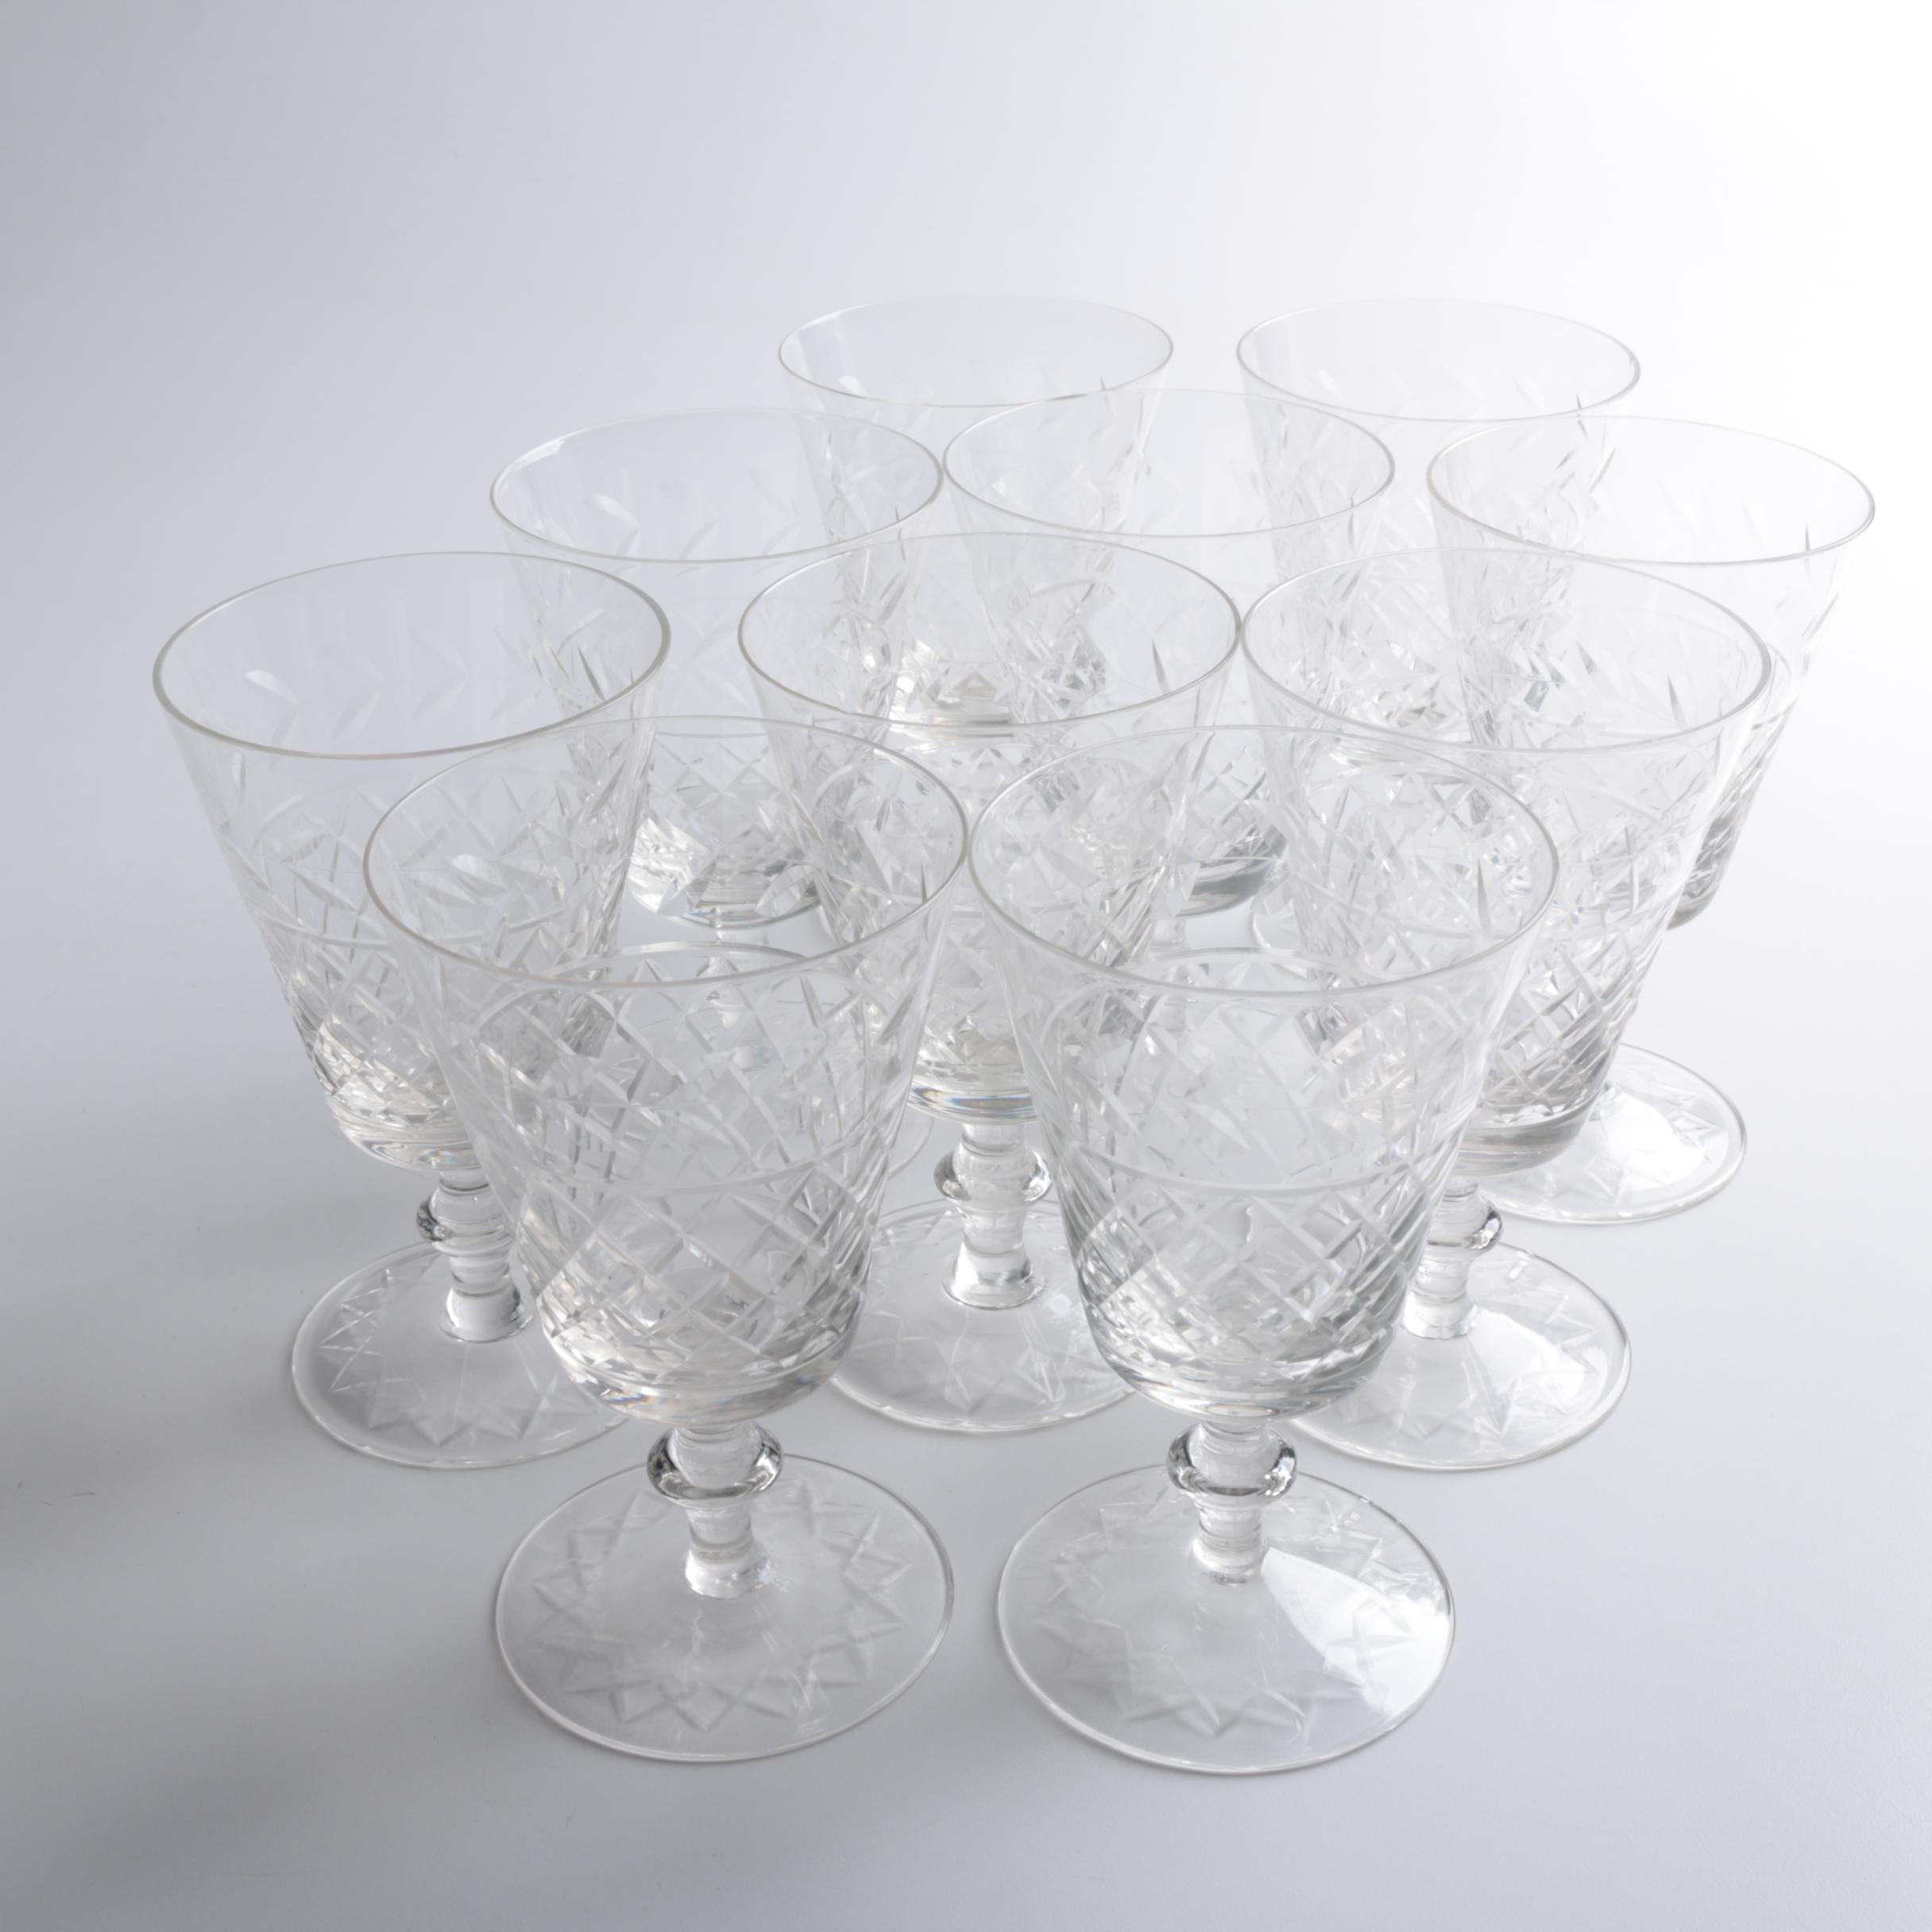 Set of Cut Glass Water Goblets